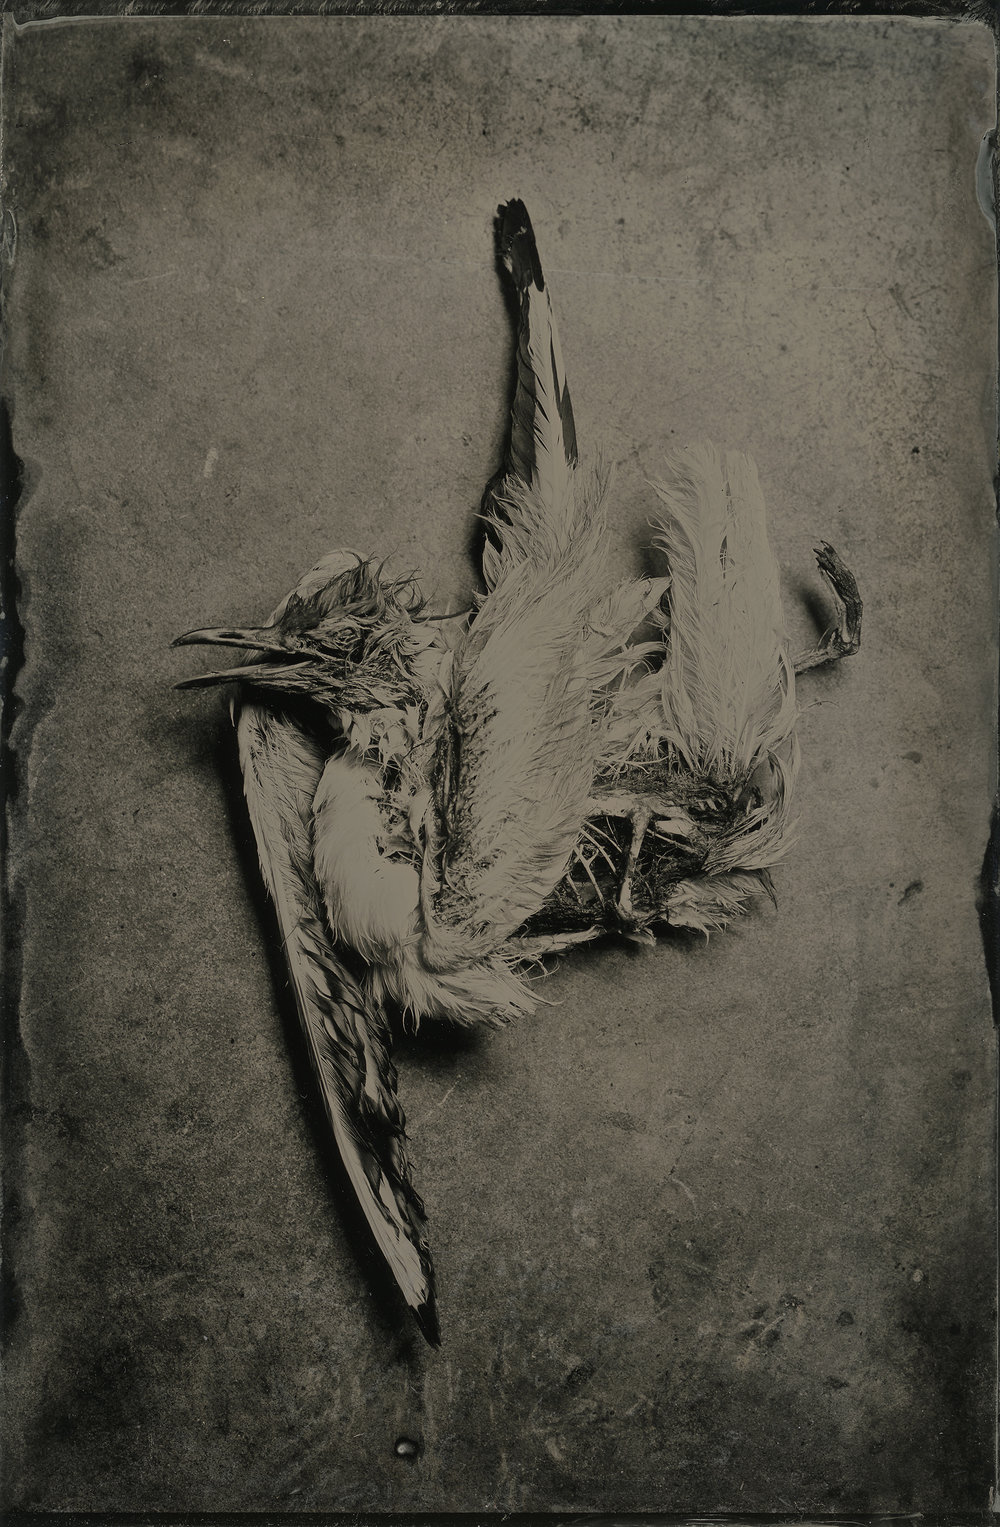 Steve Lovegrove | Seagull | Sinar Norma | 5x7 Wet Plate Collodion